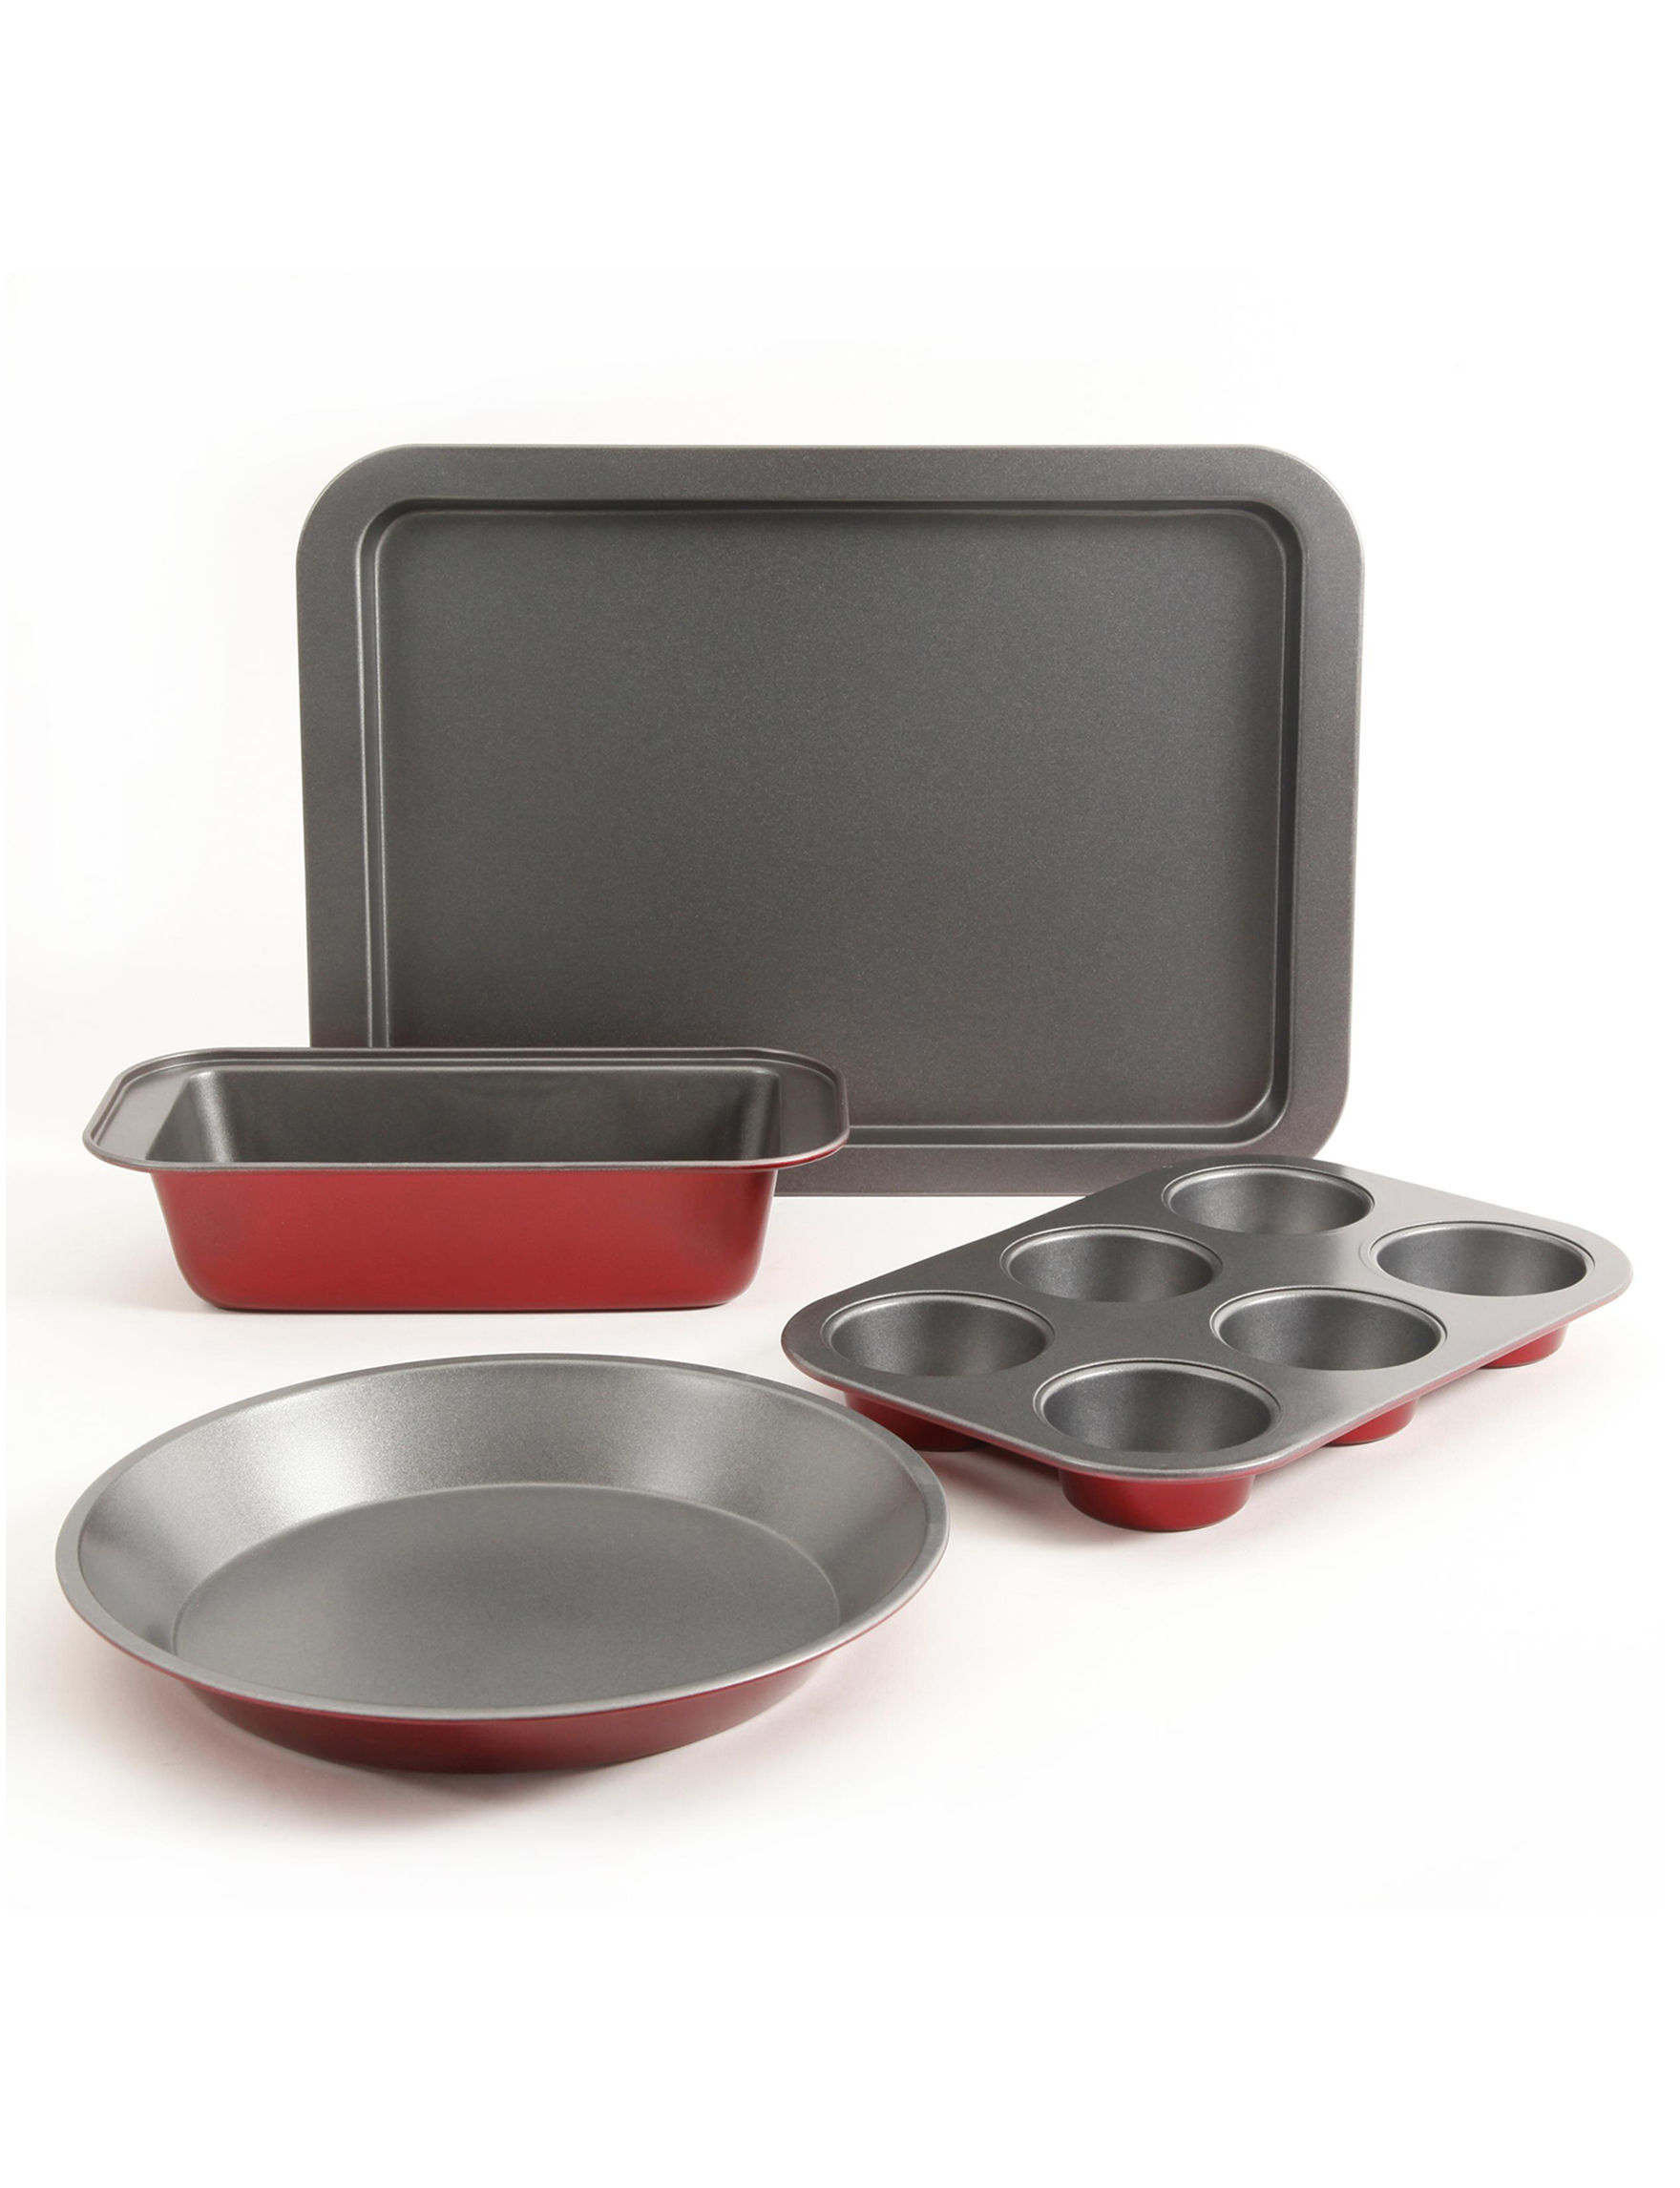 Gibson Red Bakeware Sets Bakeware Cookware